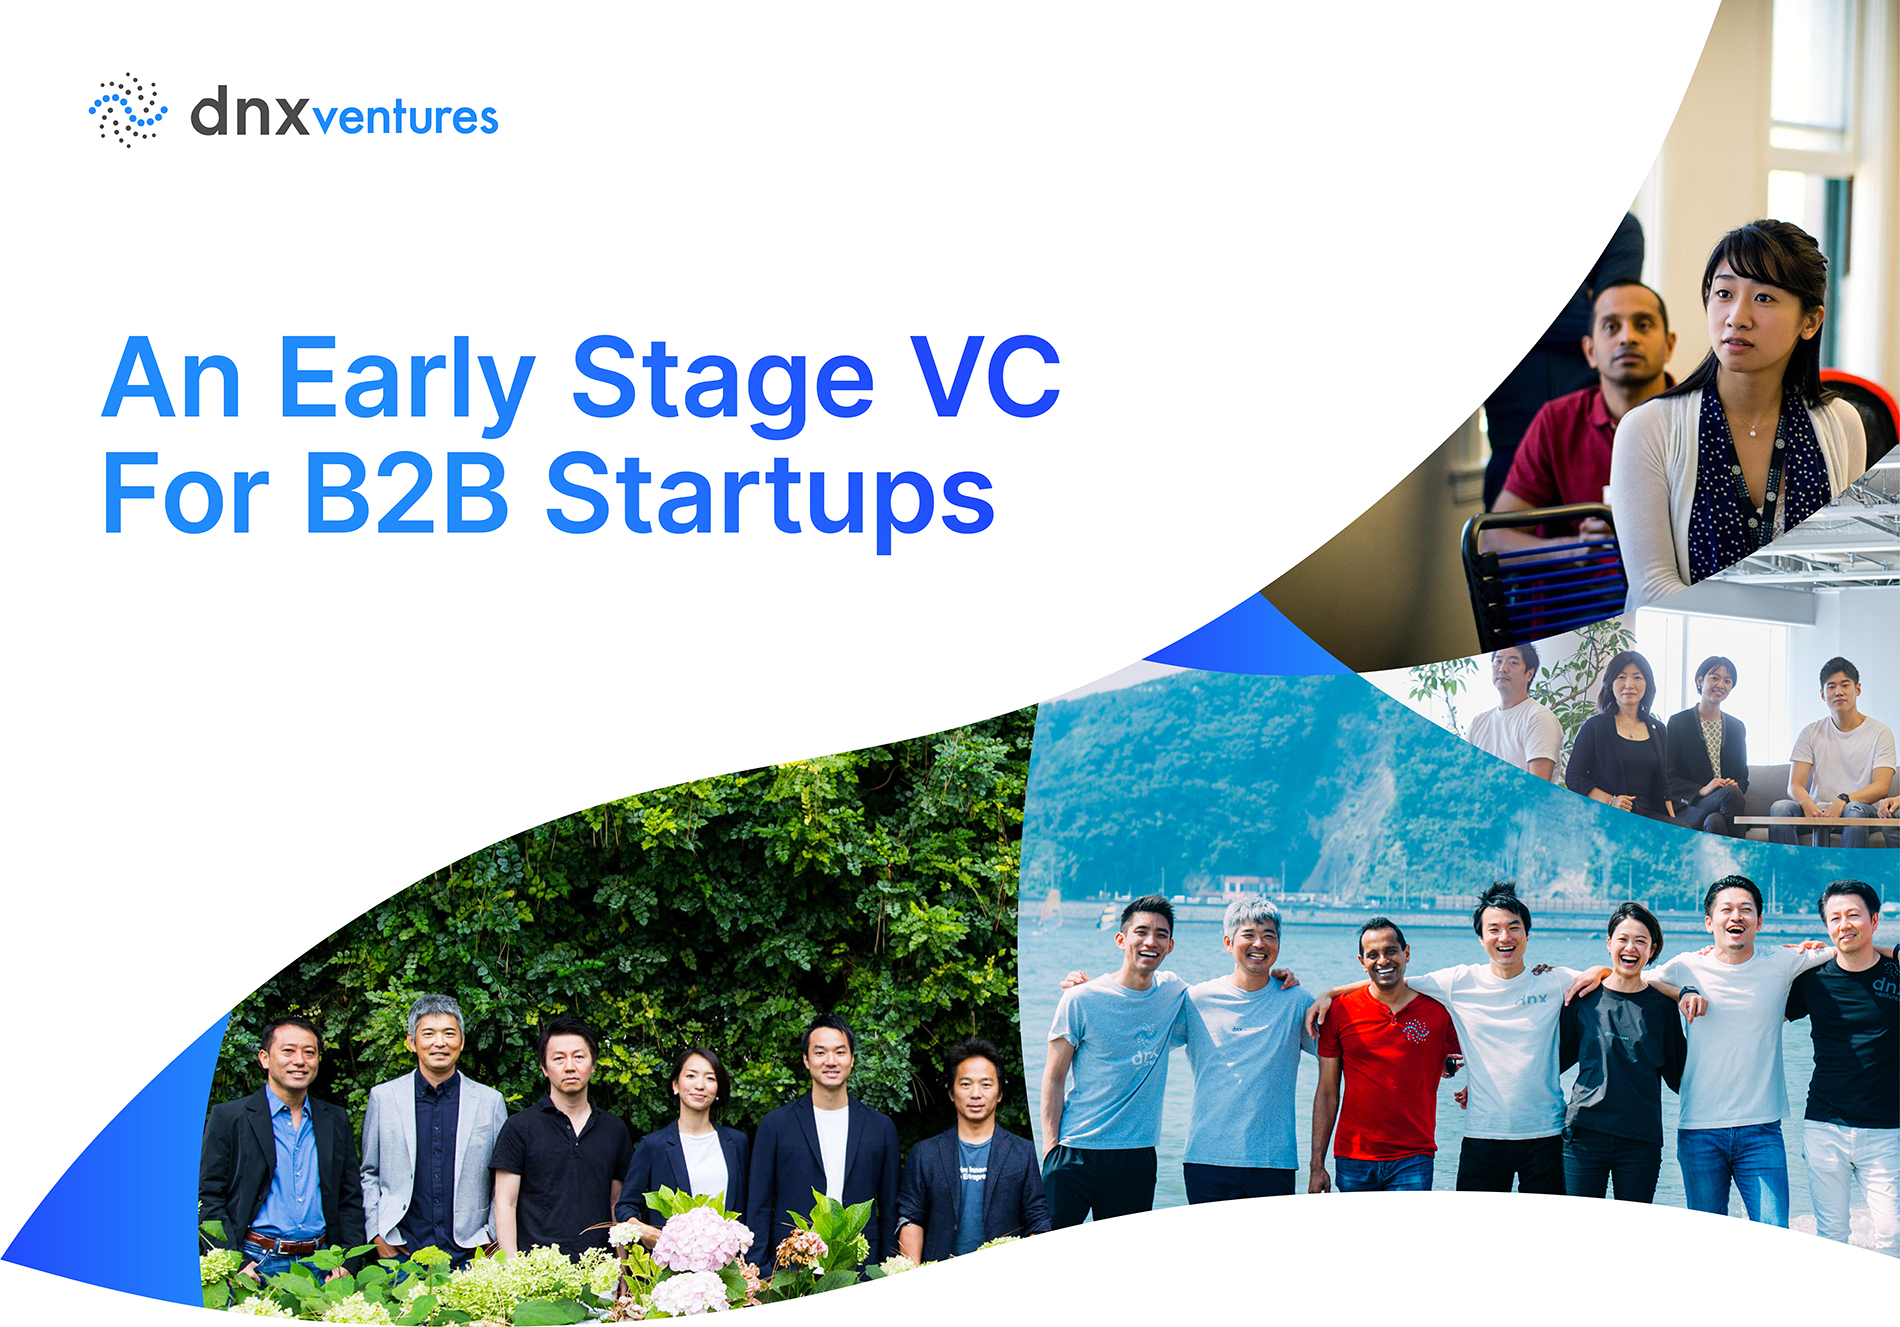 DNX Ventures family office lp: Early-Stage Venture Capital for B2B Startups